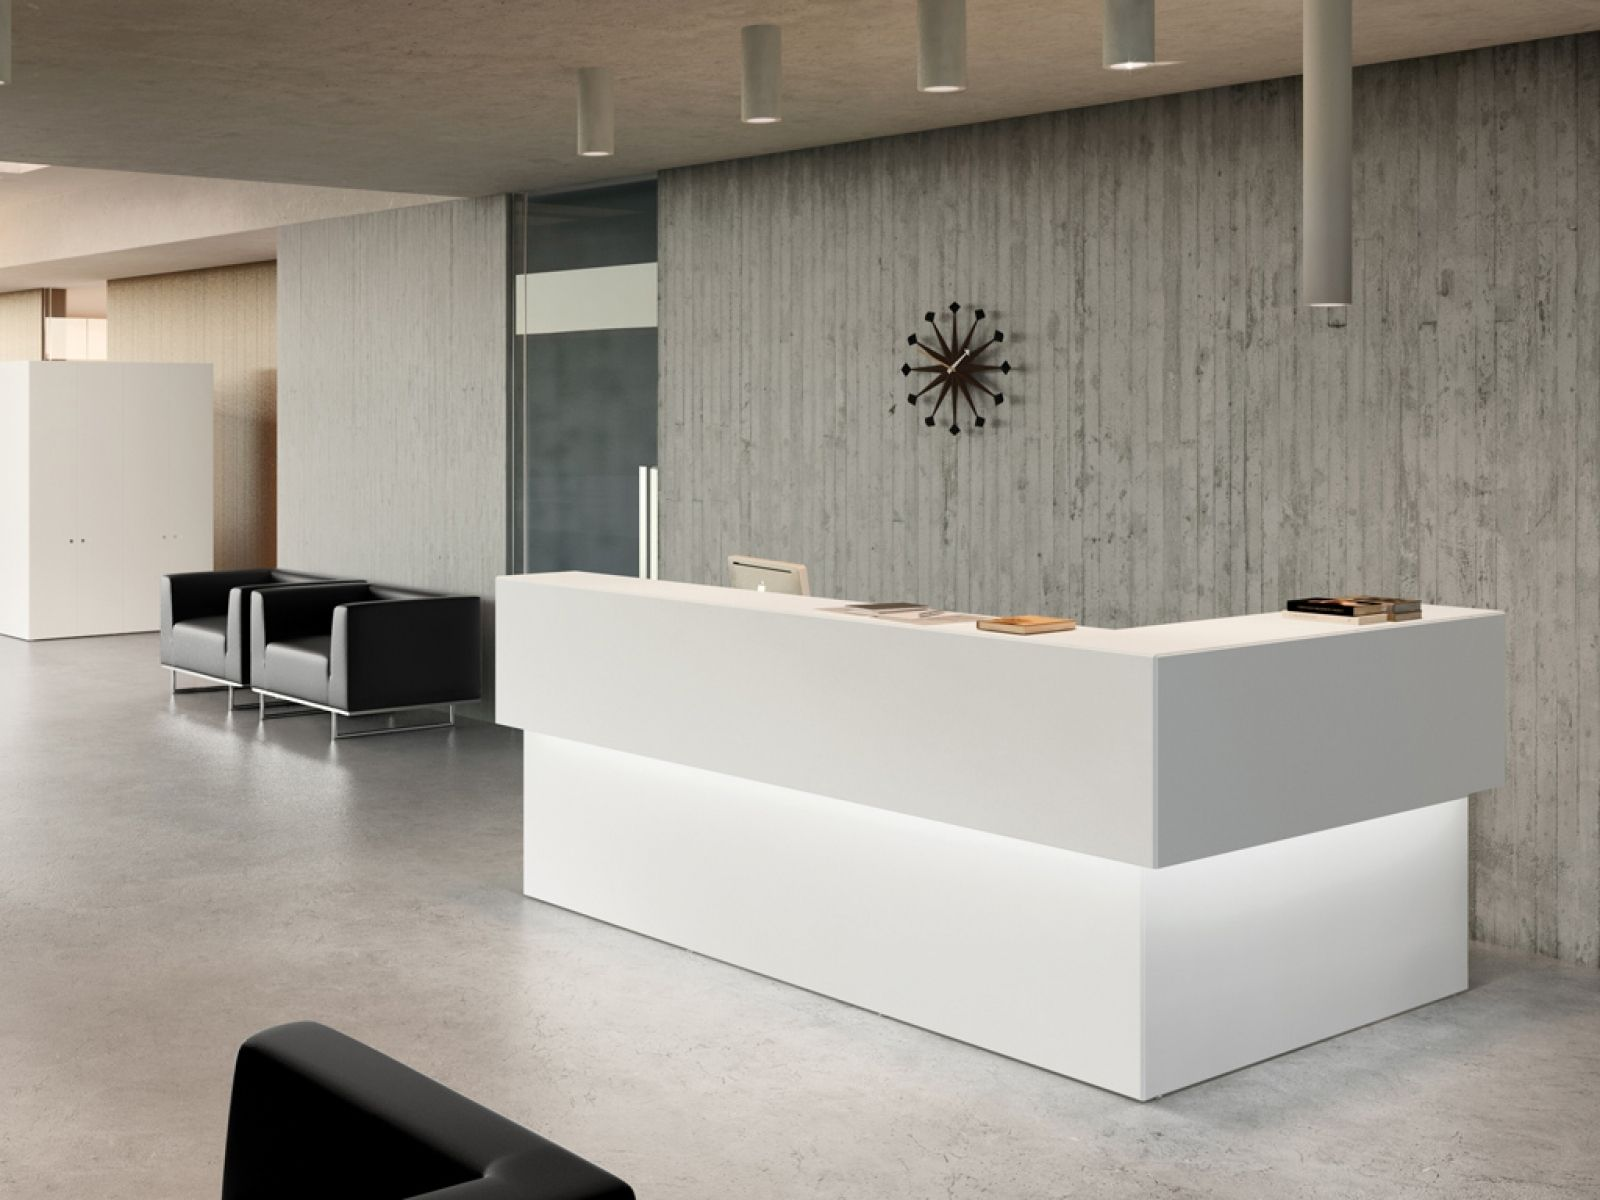 Office Reception Areas Images Google Search Modern Reception Desk Design Reception Desk Office Modern Reception Desk